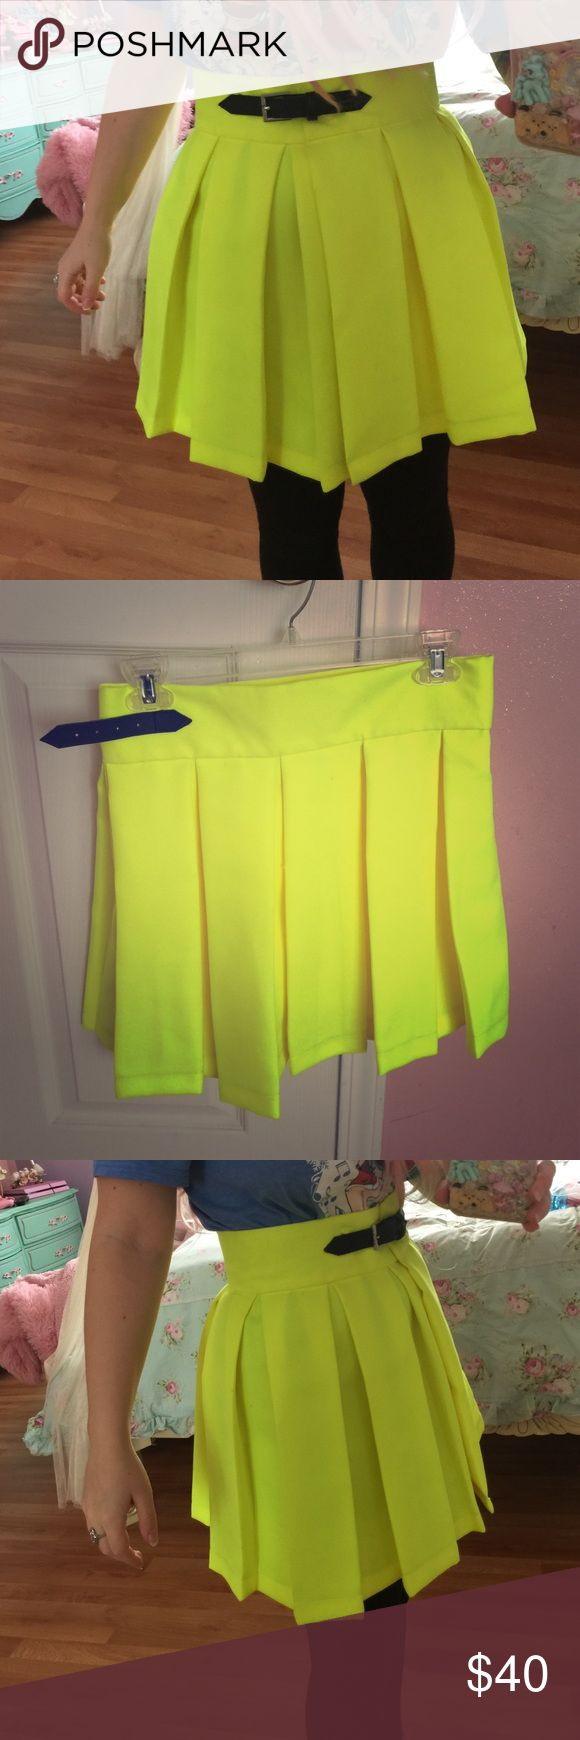 Deandri skirt neon yellow S This was from their sample sale this winter. I don't think this ever went into production so I'm pretty sure it's one of a kind! Brand new. No defects Skirts Midi